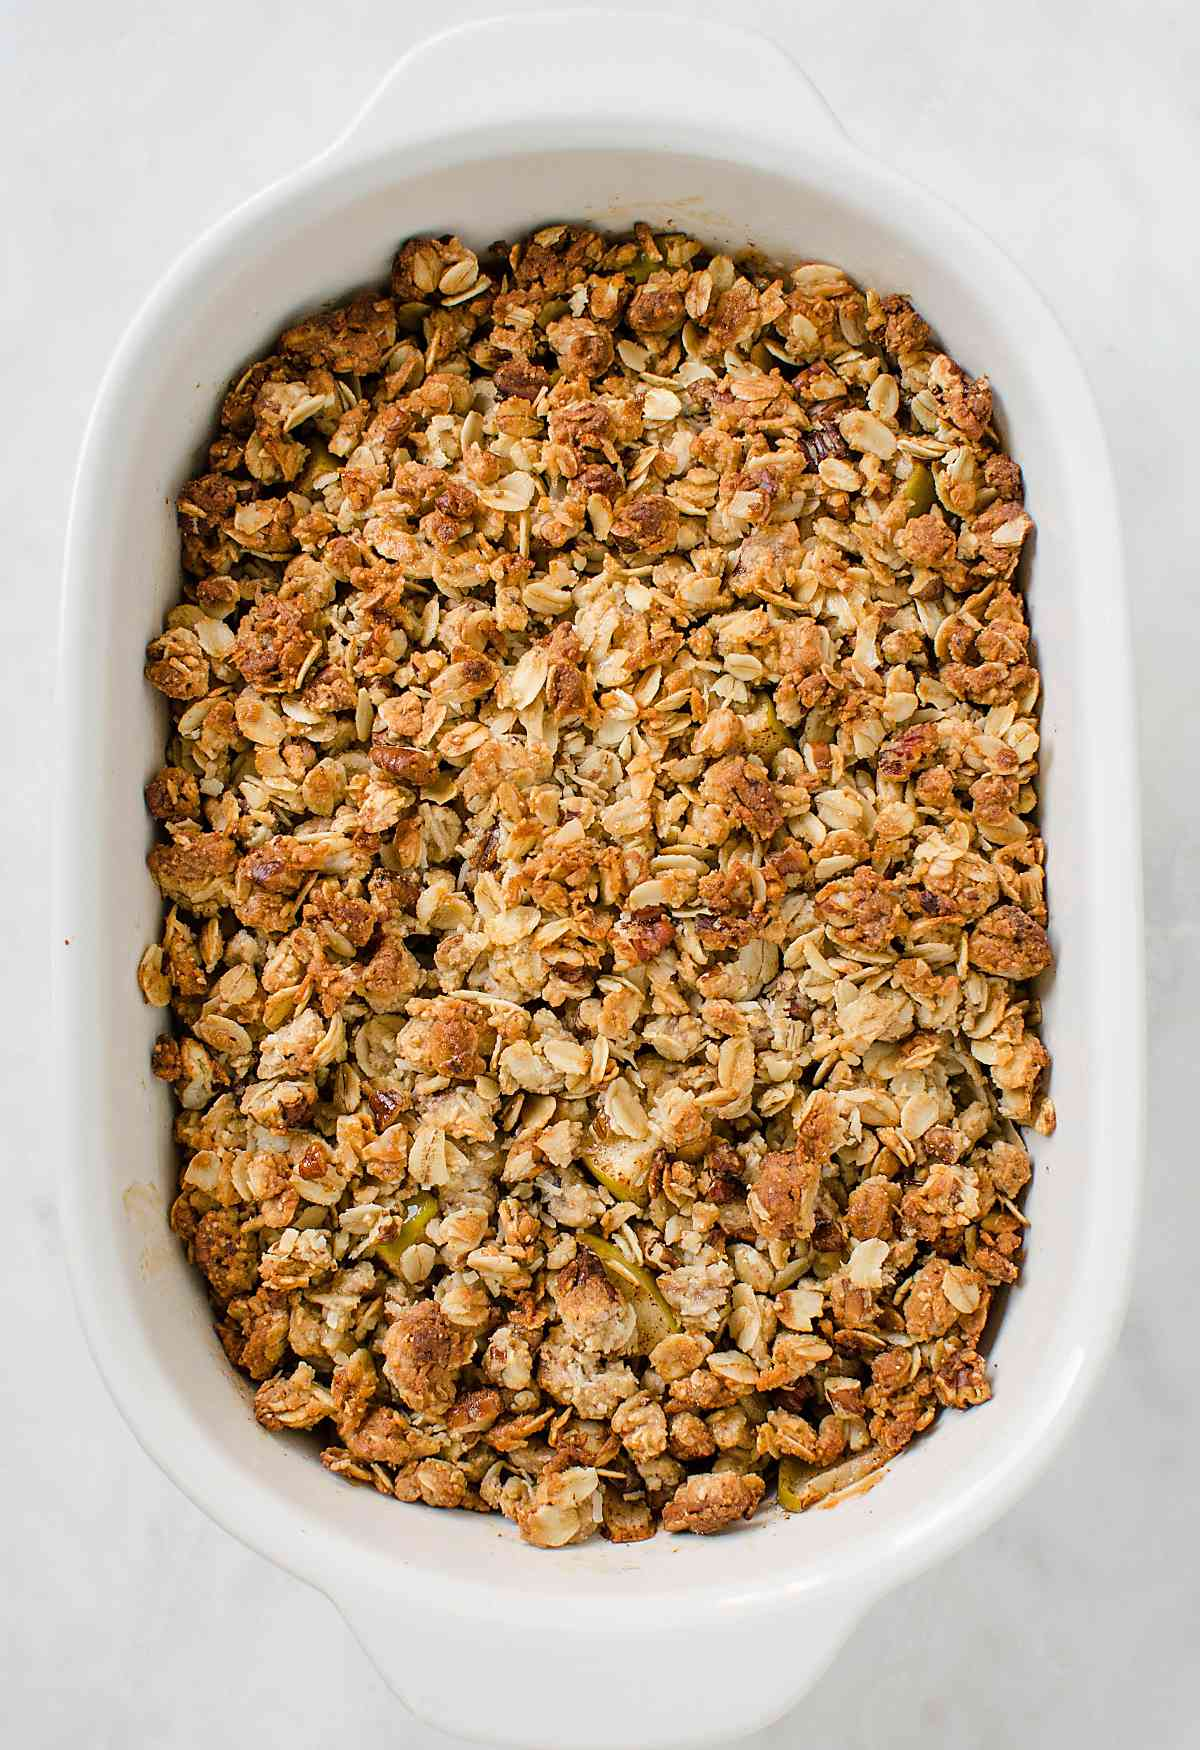 This easy and healthy apple crisp recipe is perfect for enjoying dessert guilt-free. No one will notice that it is skinny with no butter and white sugar.